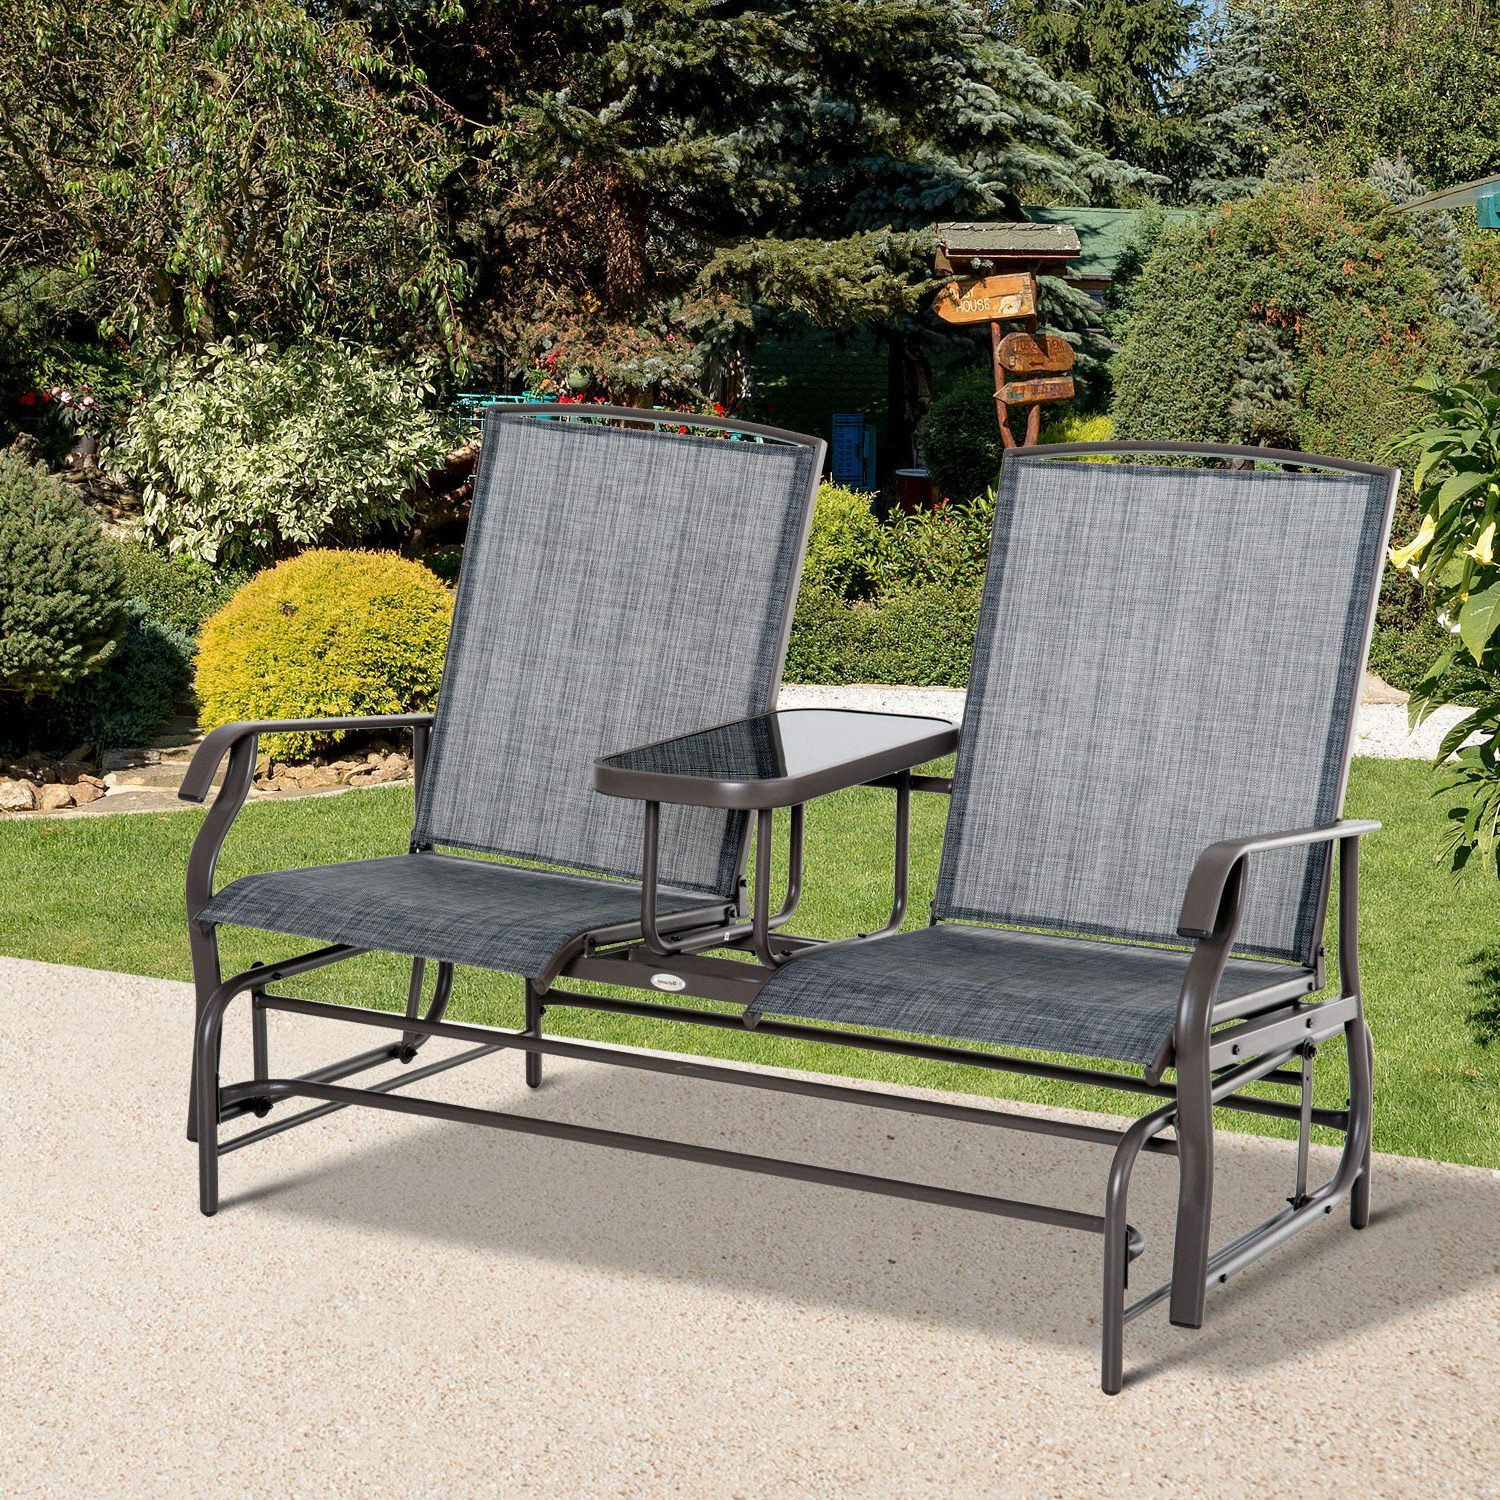 Outdoor Patio Swing Glider Bench Chair S Throughout Most Current Outsunny 2 Seater Patio Glider Rocking Chair Metal Swing Bench Furniture Table (View 21 of 30)